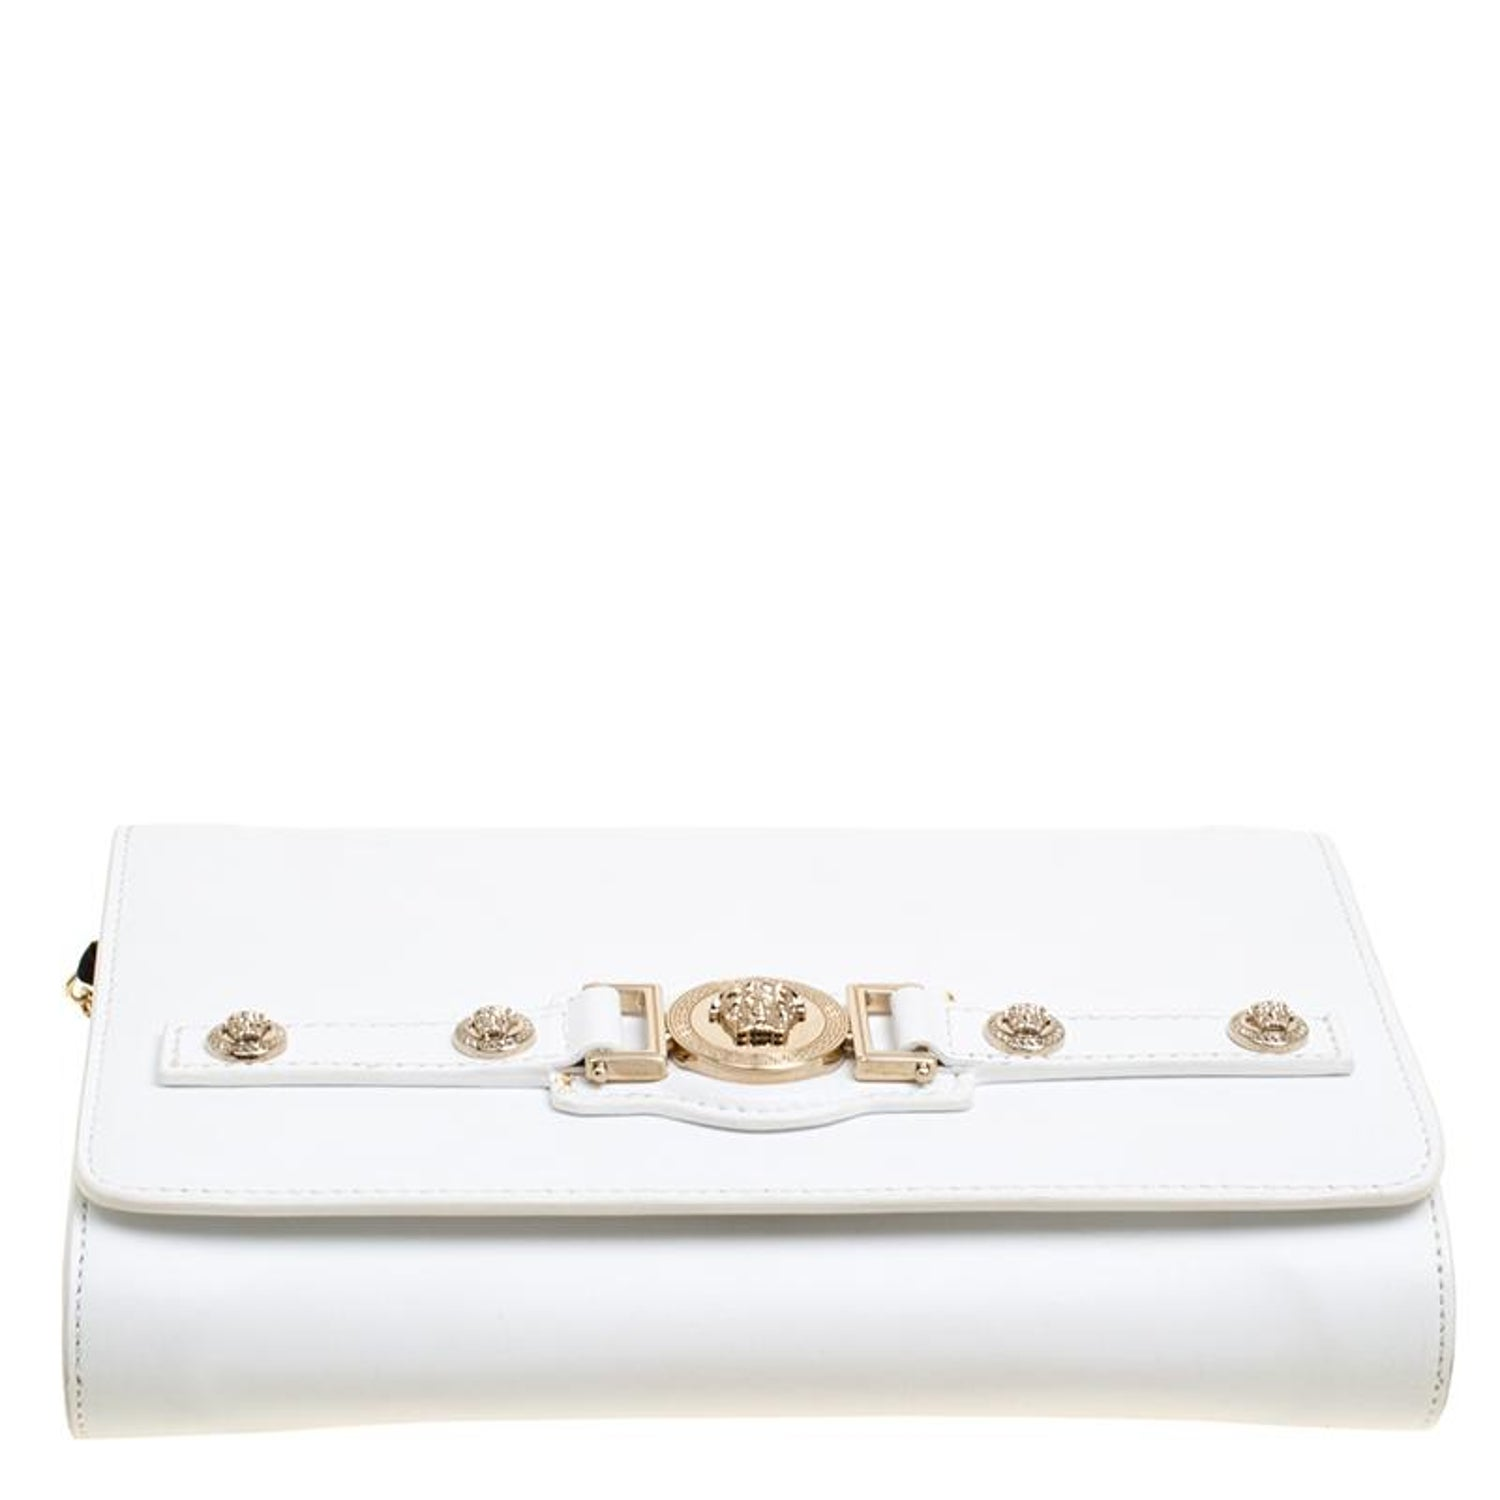 5abb7caa3b Versace White Clutch - Madly Indian